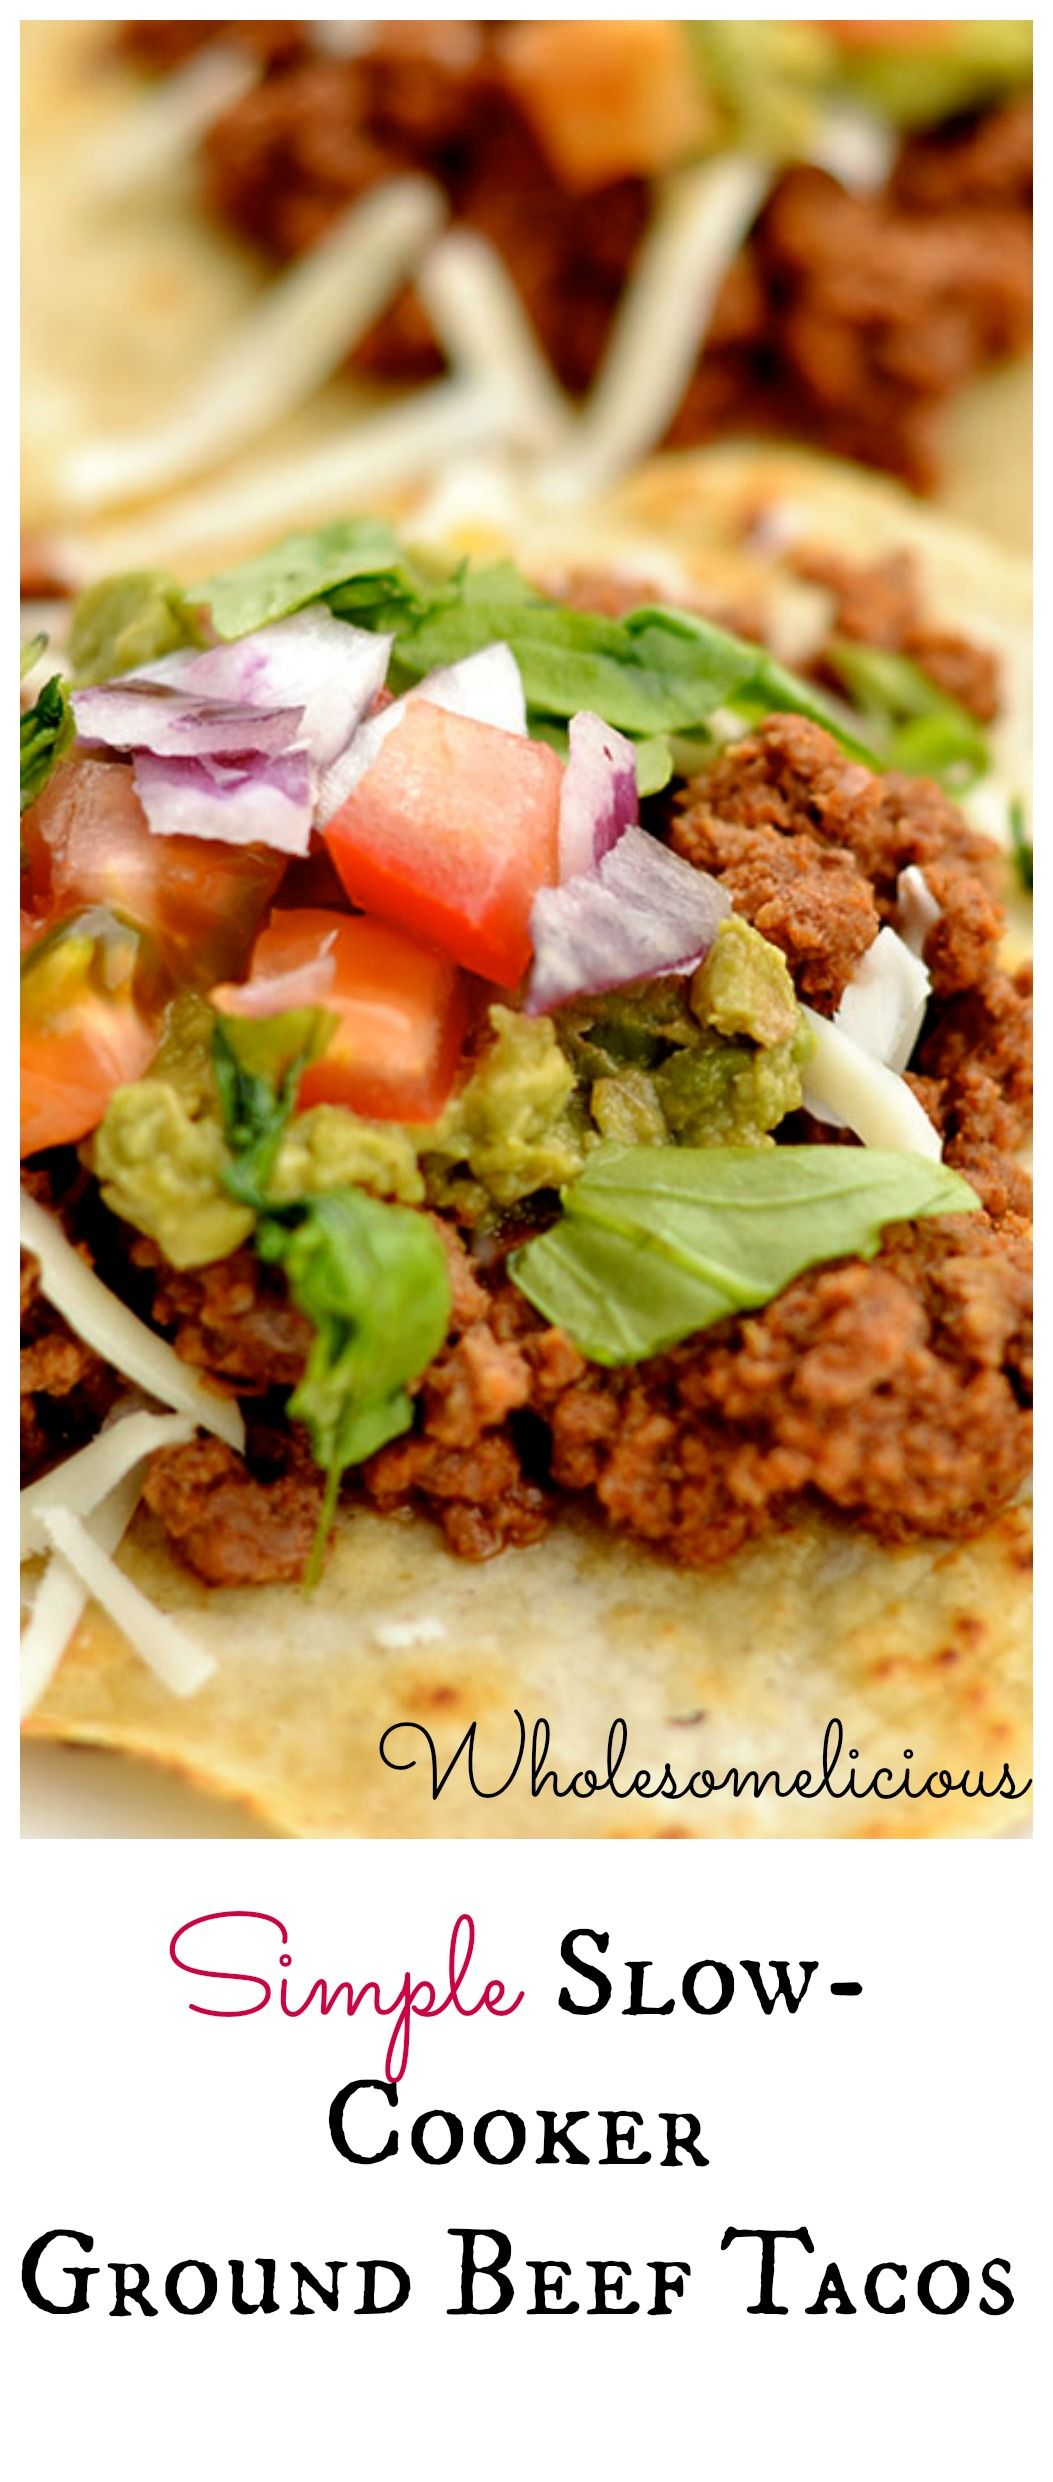 Slow Cooker Ground Beef Tacos Wholesomelicious Slow Cooker Ground Beef Paleo Slow Cooker Ground Beef Tacos